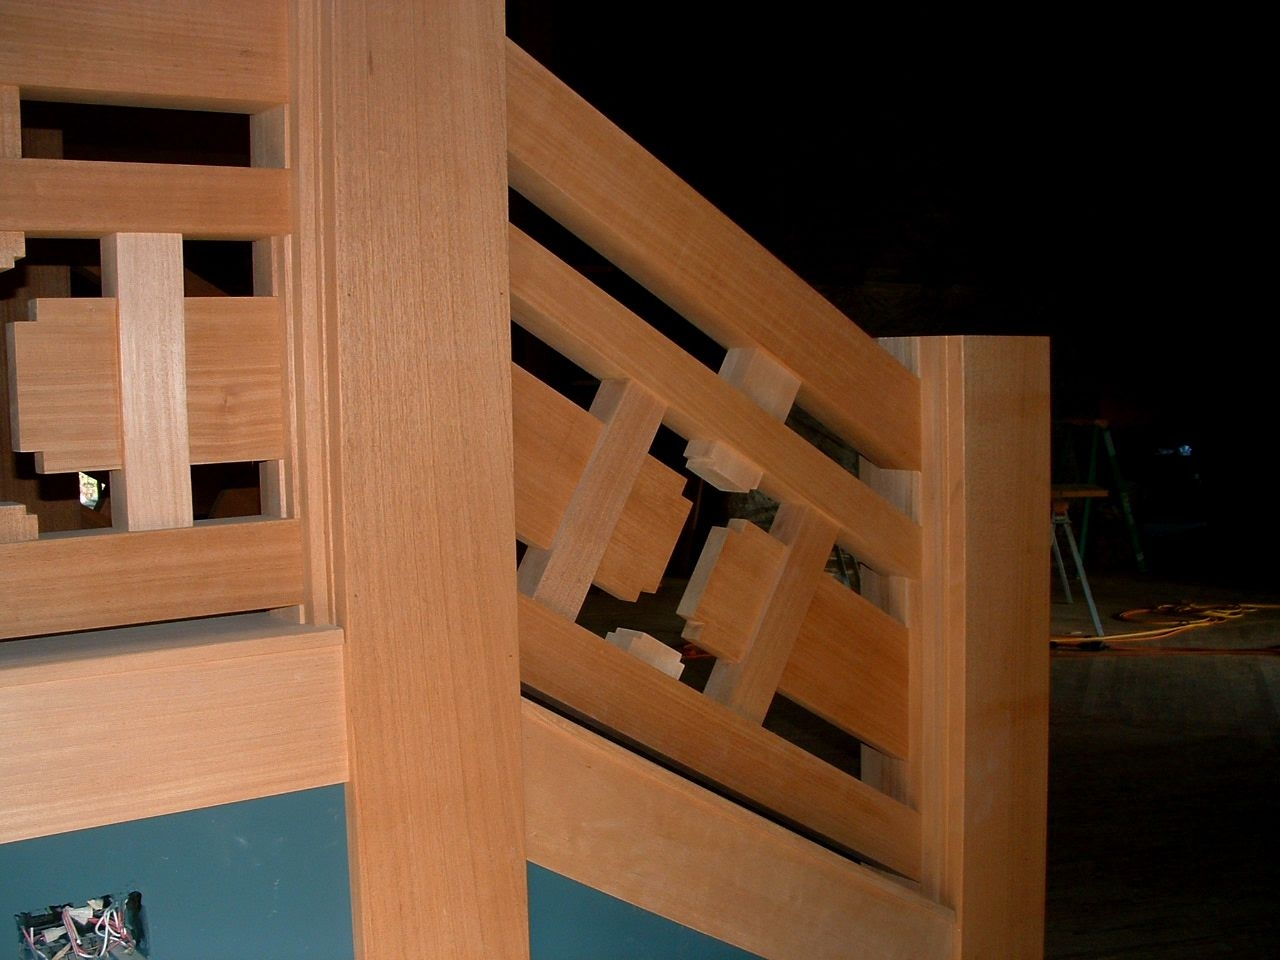 Handmade Mahogany Stair Rail By Pacific Millworks | Mahogany Handrails For Stairs